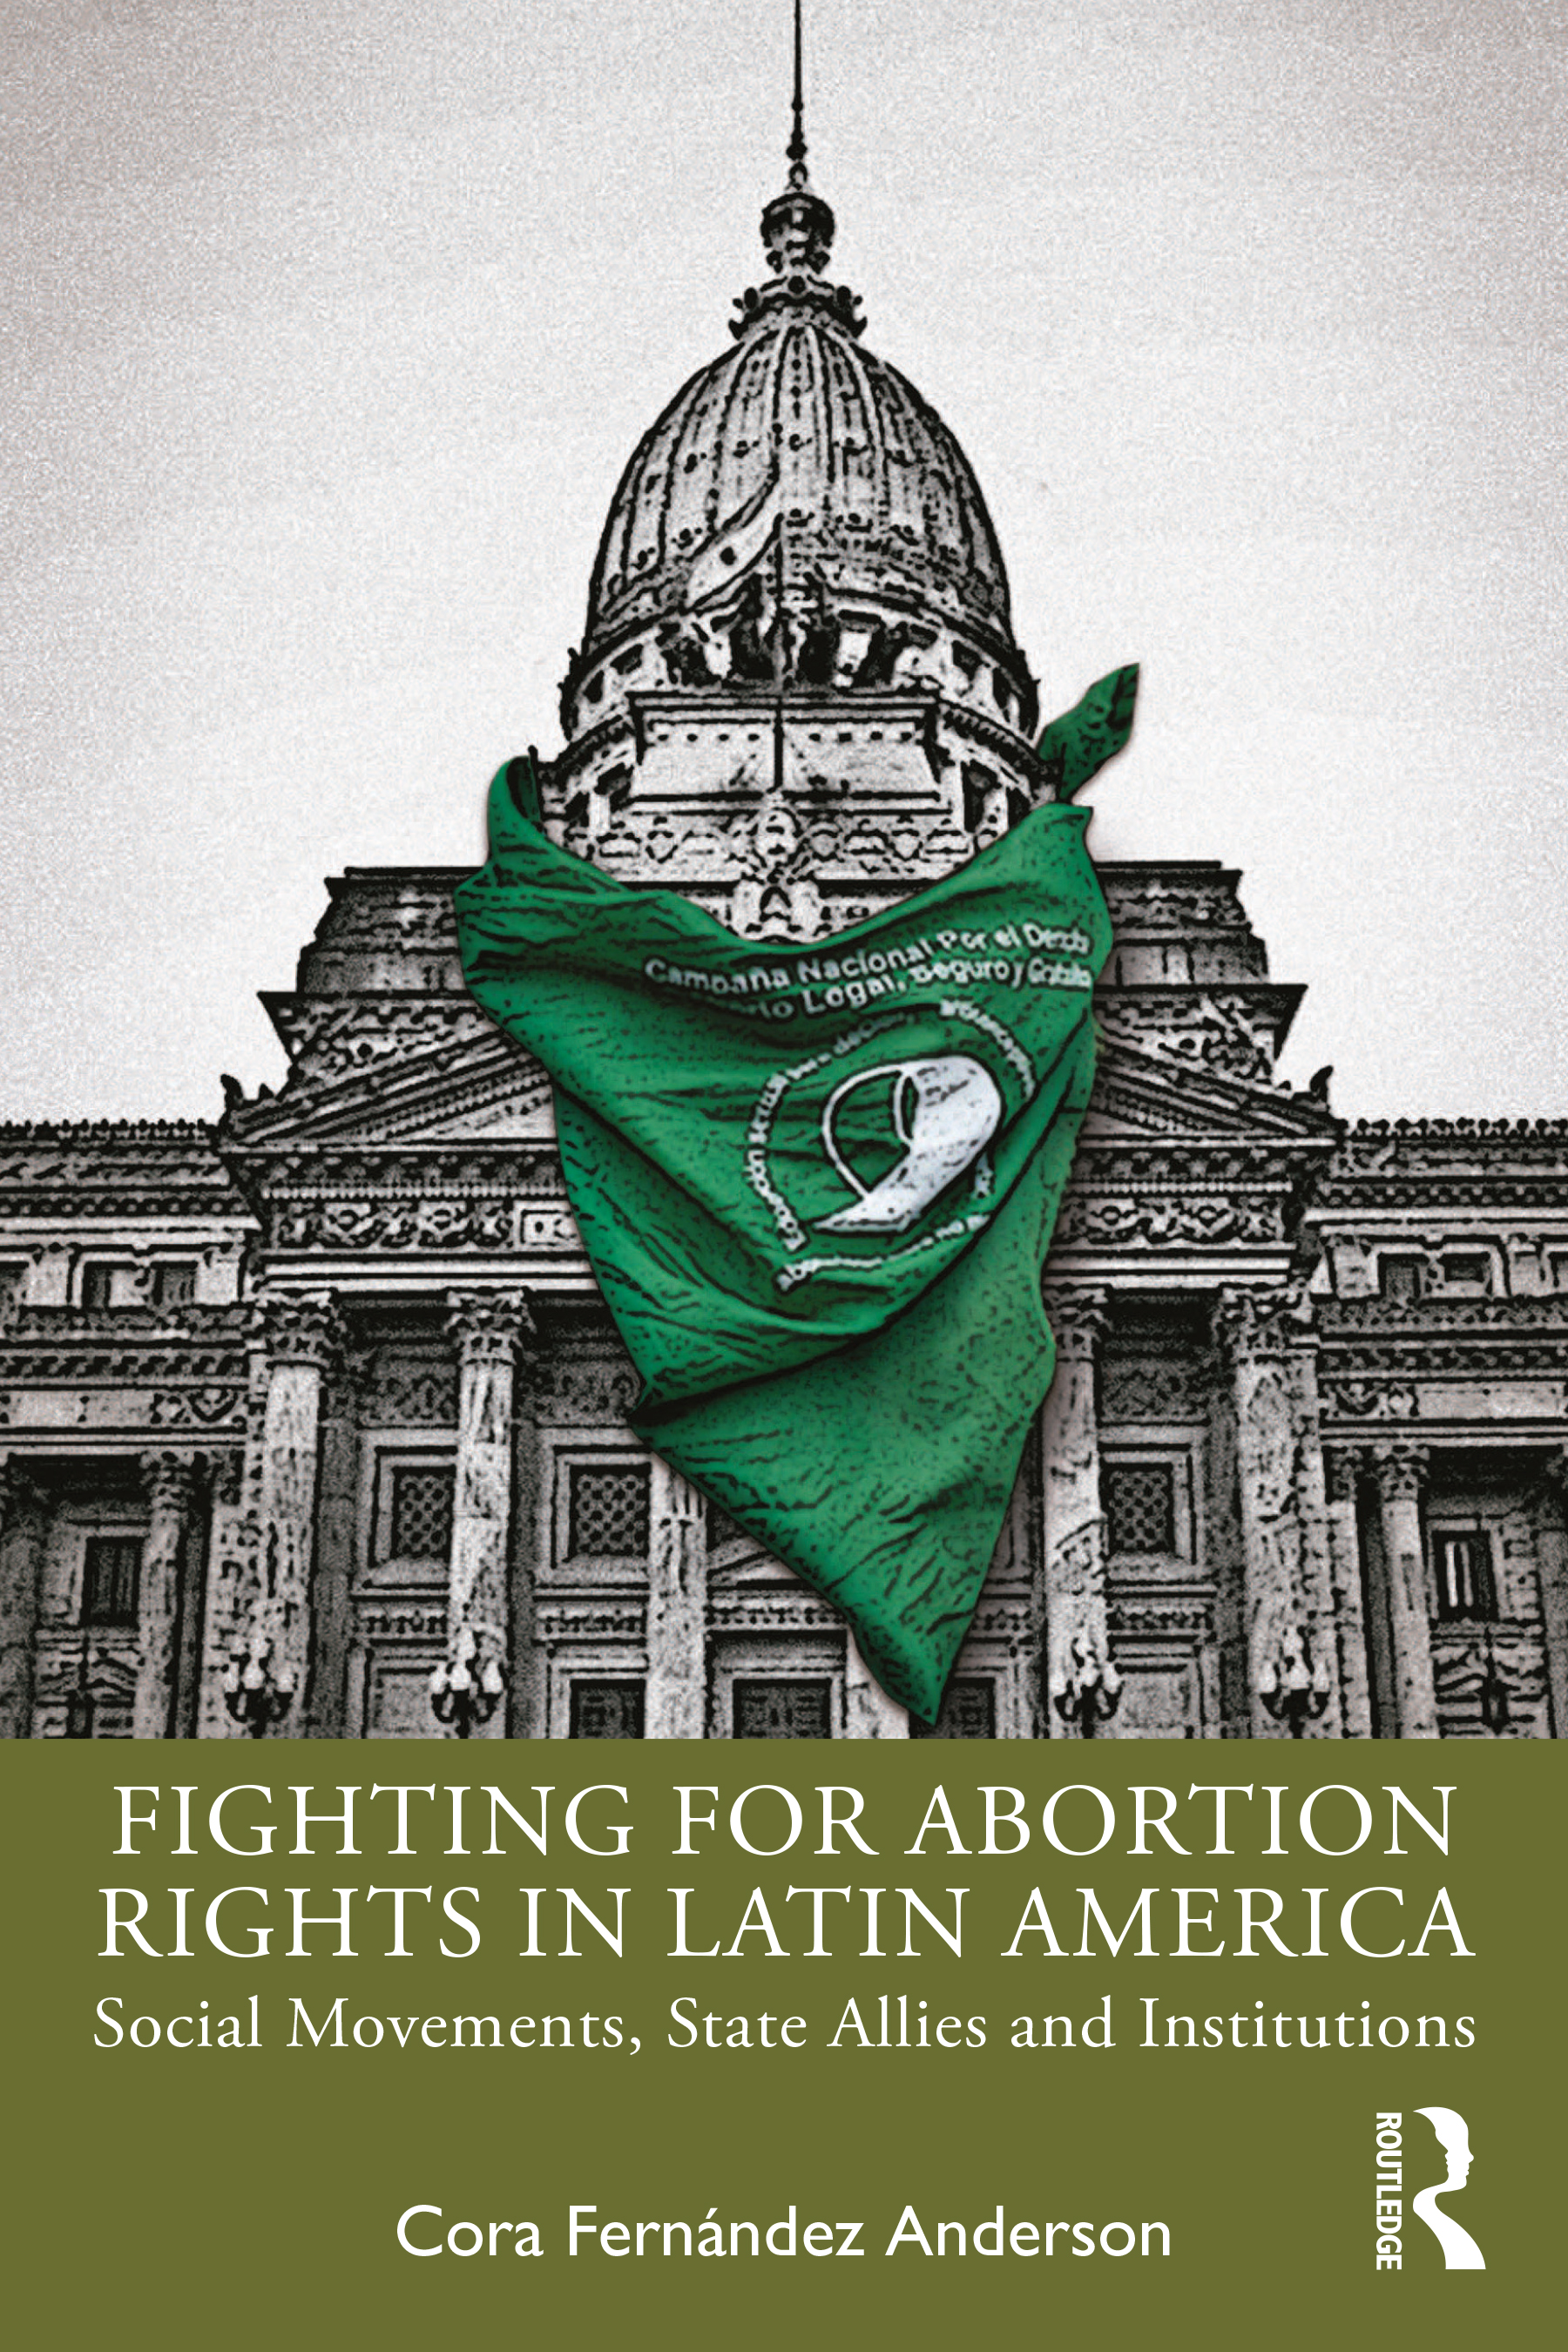 Fighting for Abortion Rights in Latin America: Social Movements, State Allies and Institutions book cover